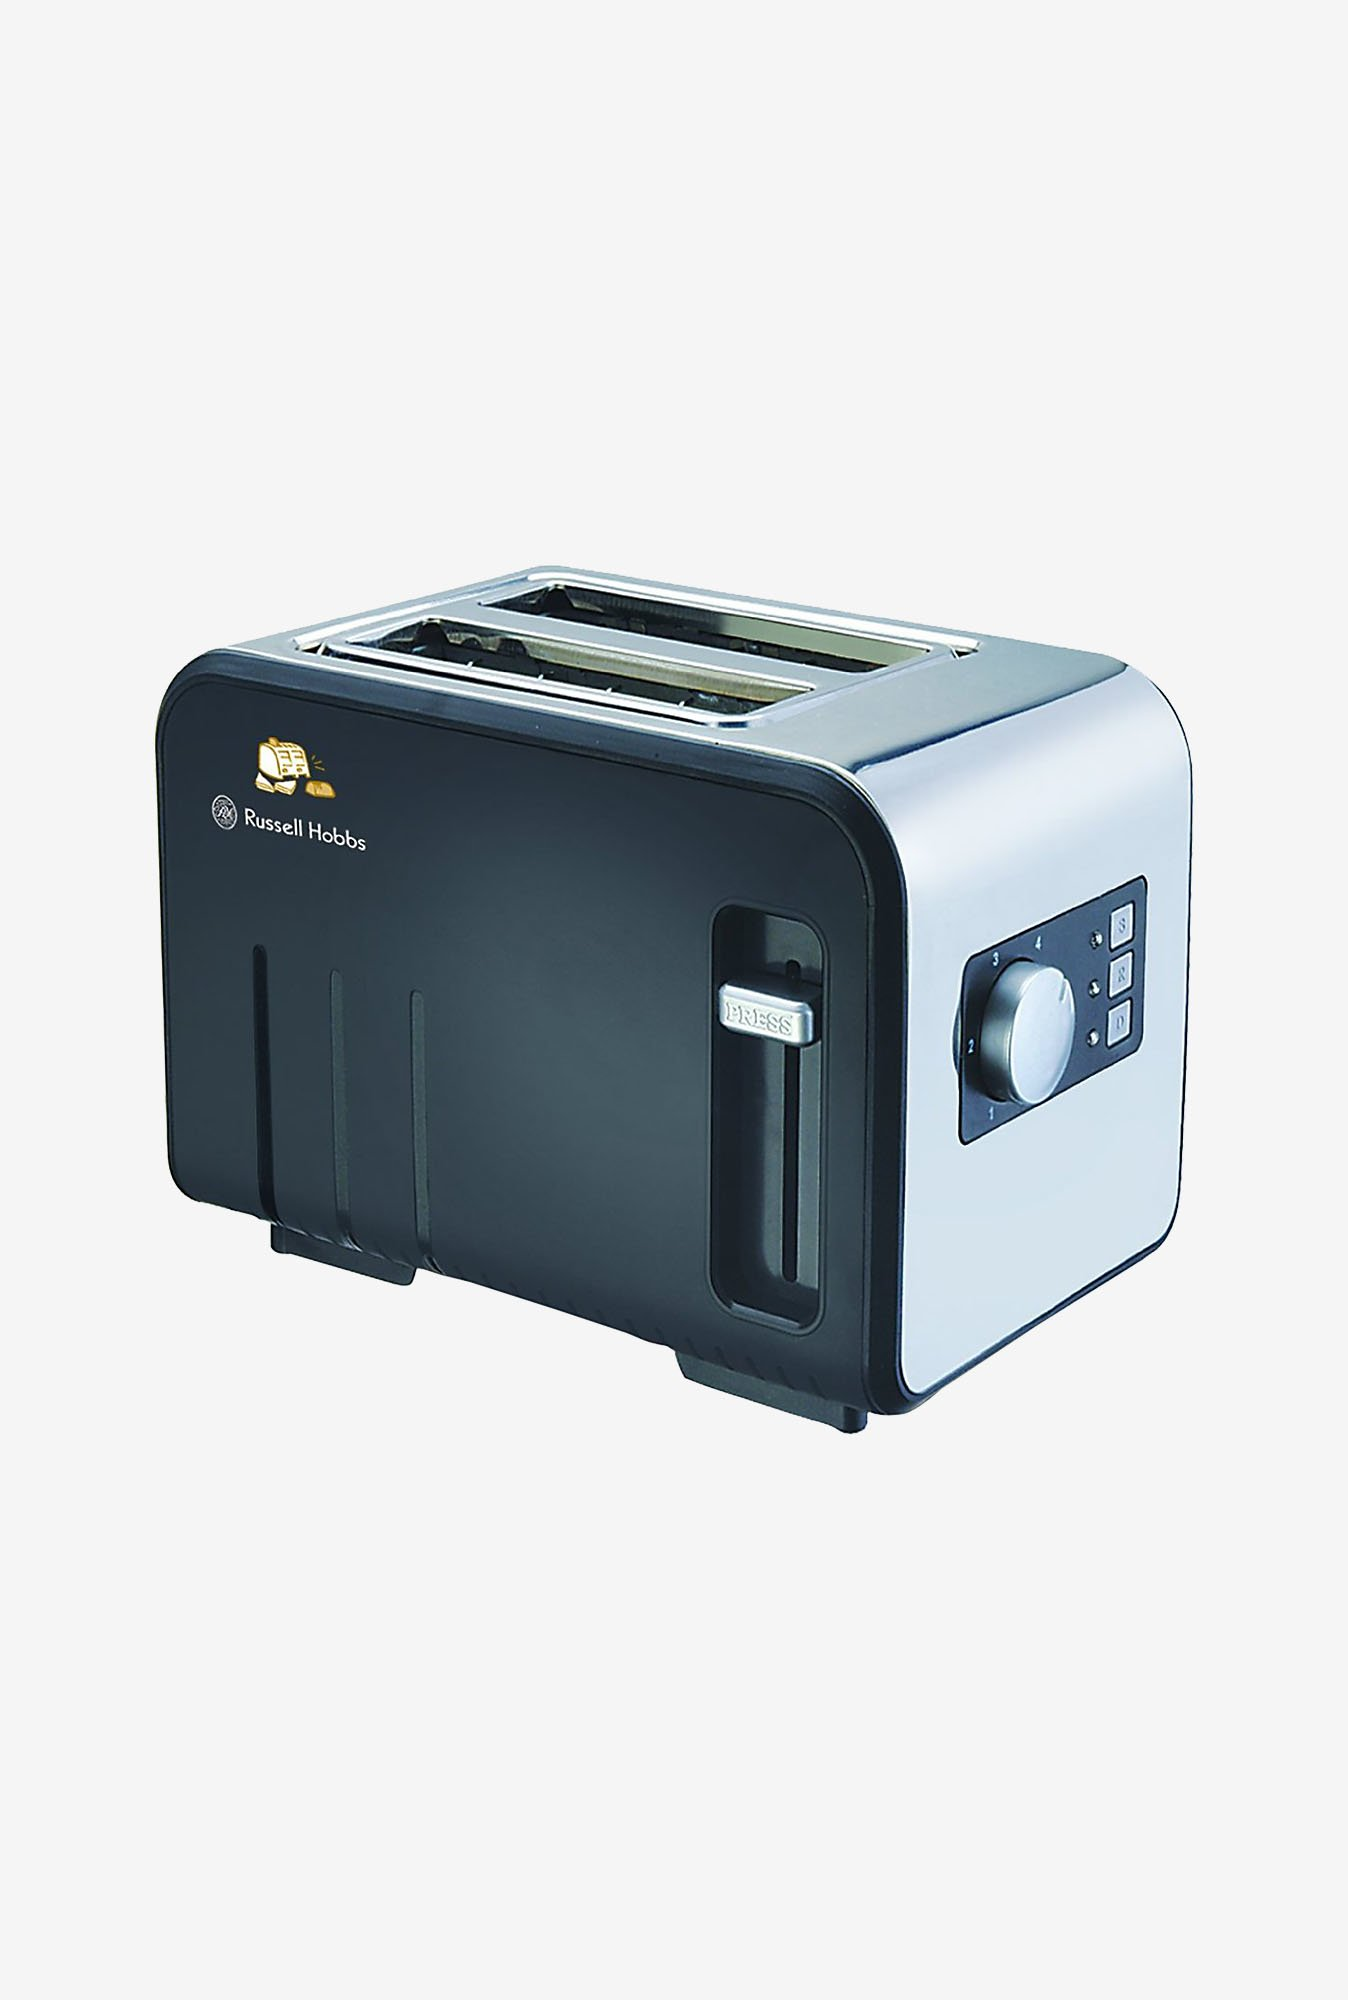 Russell Hobbs RPT802S 800 W 2 Slice Pop up Toaster (Black)